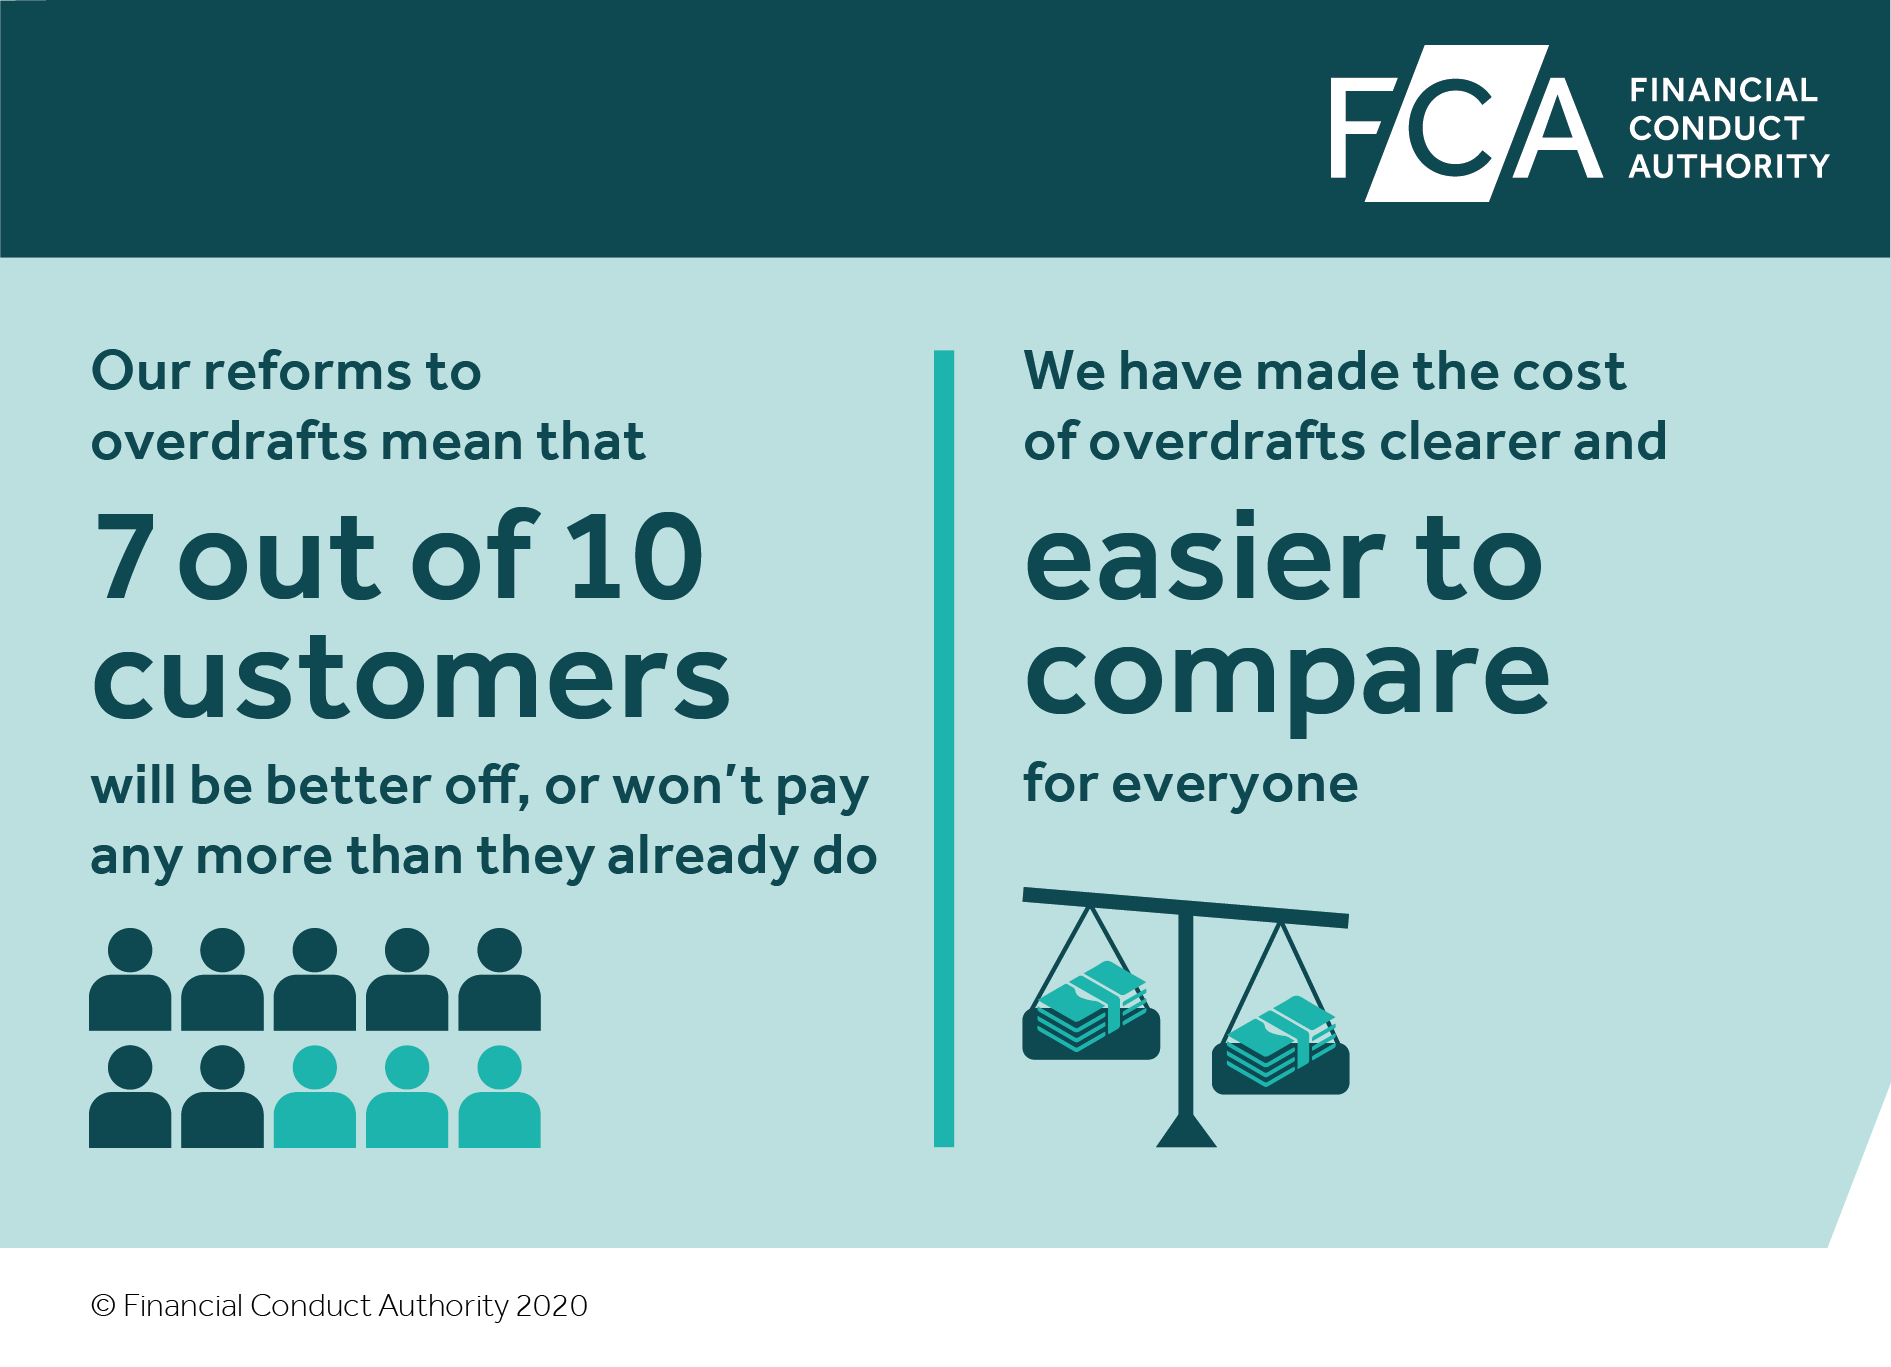 We have made the cost of overdrafts clearer and easier to compare for everyone.